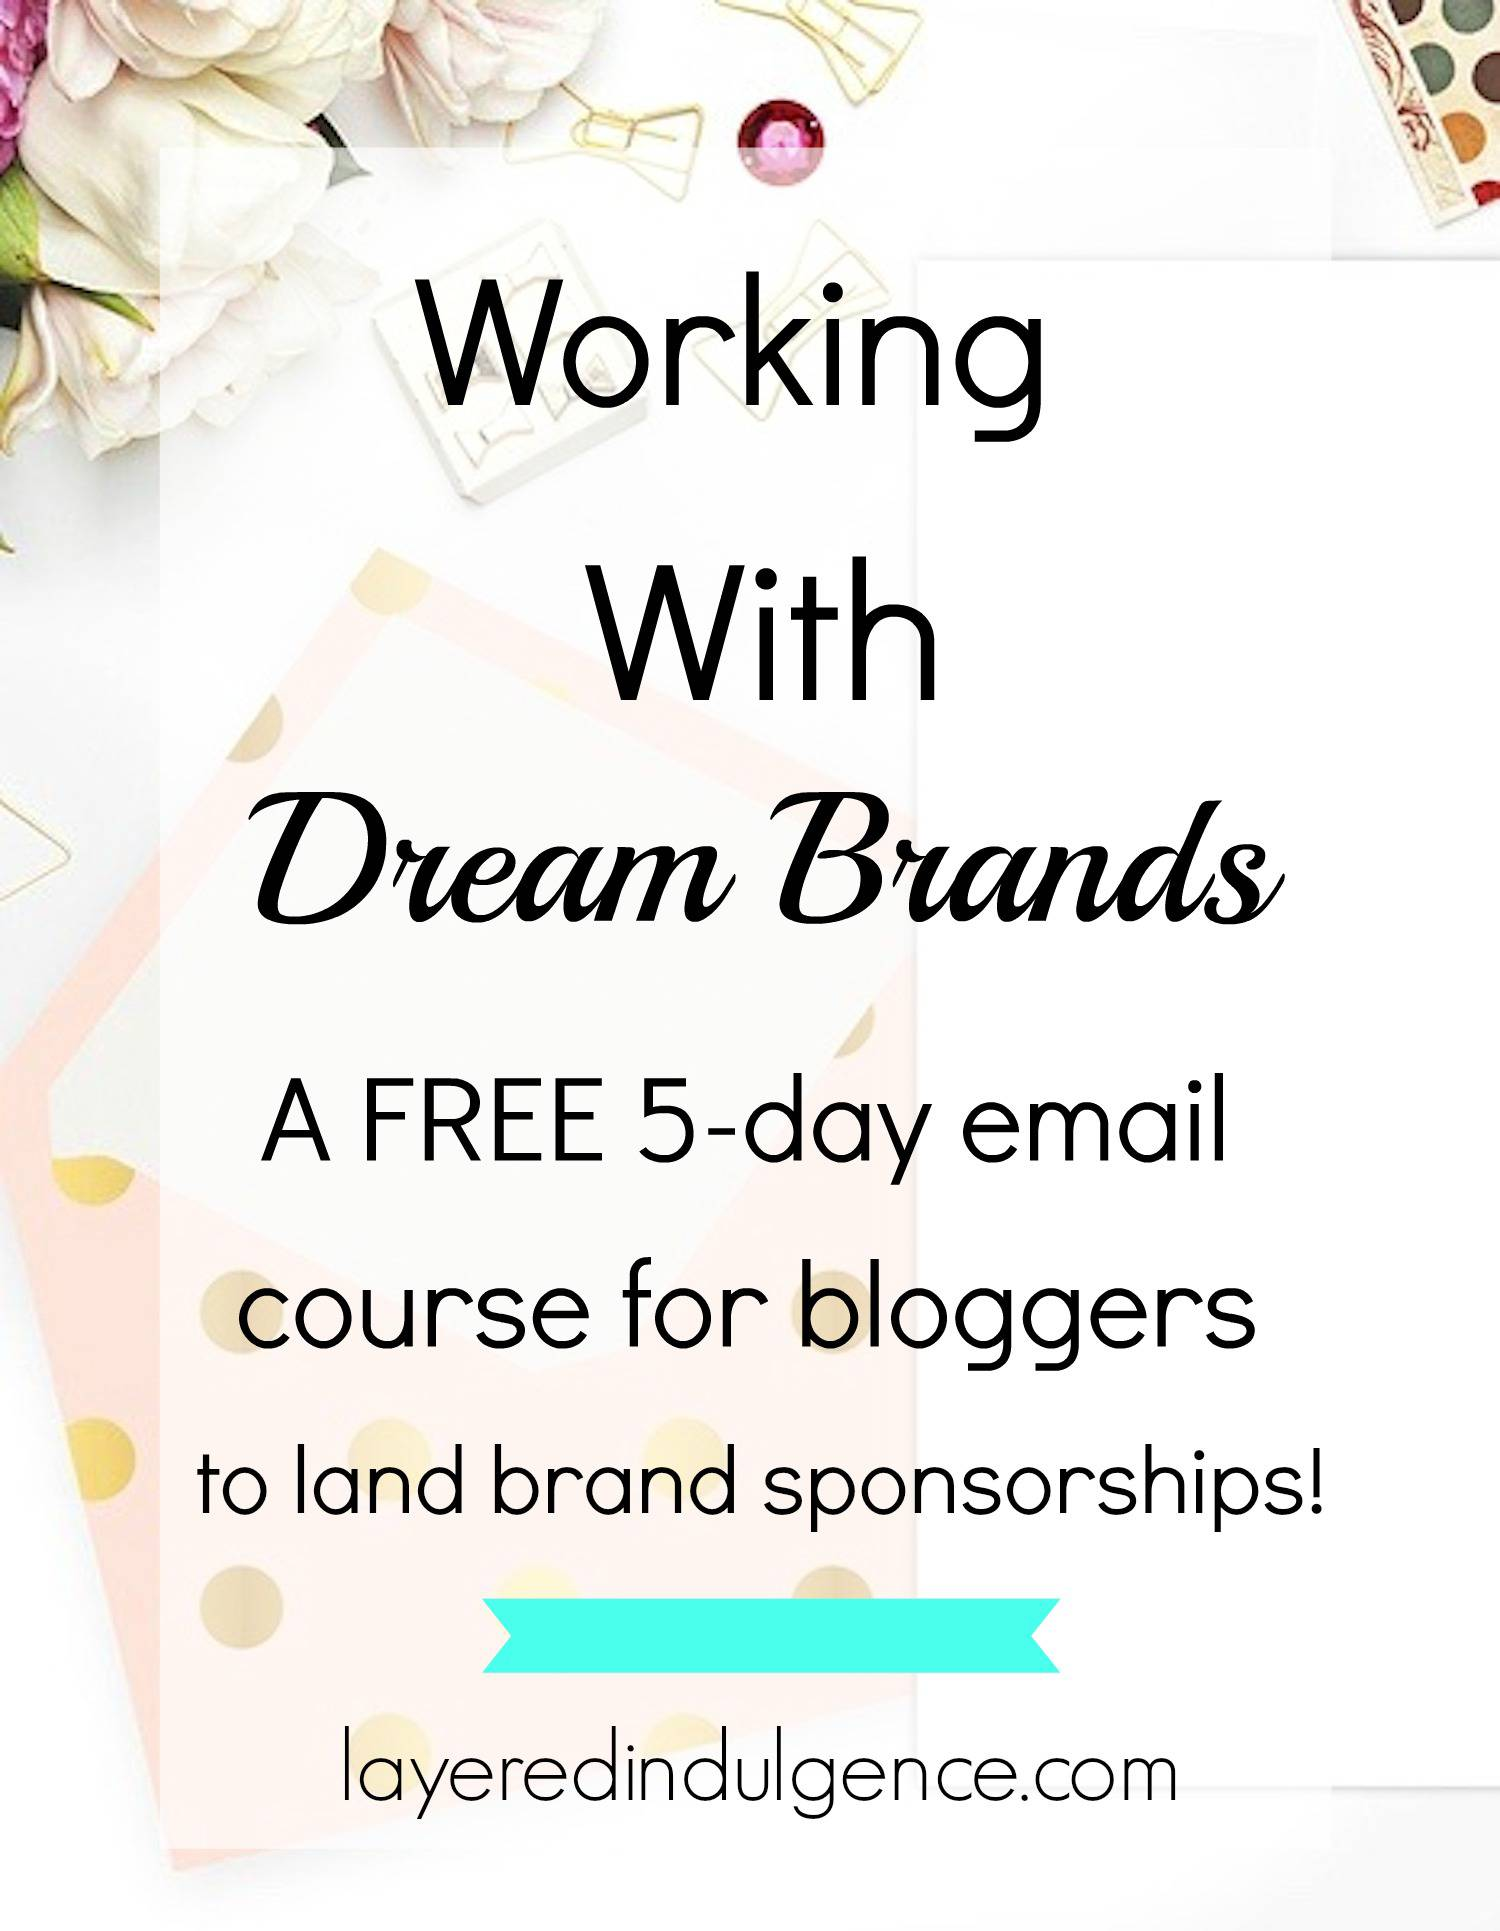 Do you want to make money as a blogger and work with your dream brands? This FREE 5-day email course will teach you how to land sponsored posts, how much to charge, how to write awesome sponsored content, and much more! If you're ready to start working with your dream brands, this step by step course will tell you exactly how to get started! Click through to read more and sign up for the course now!